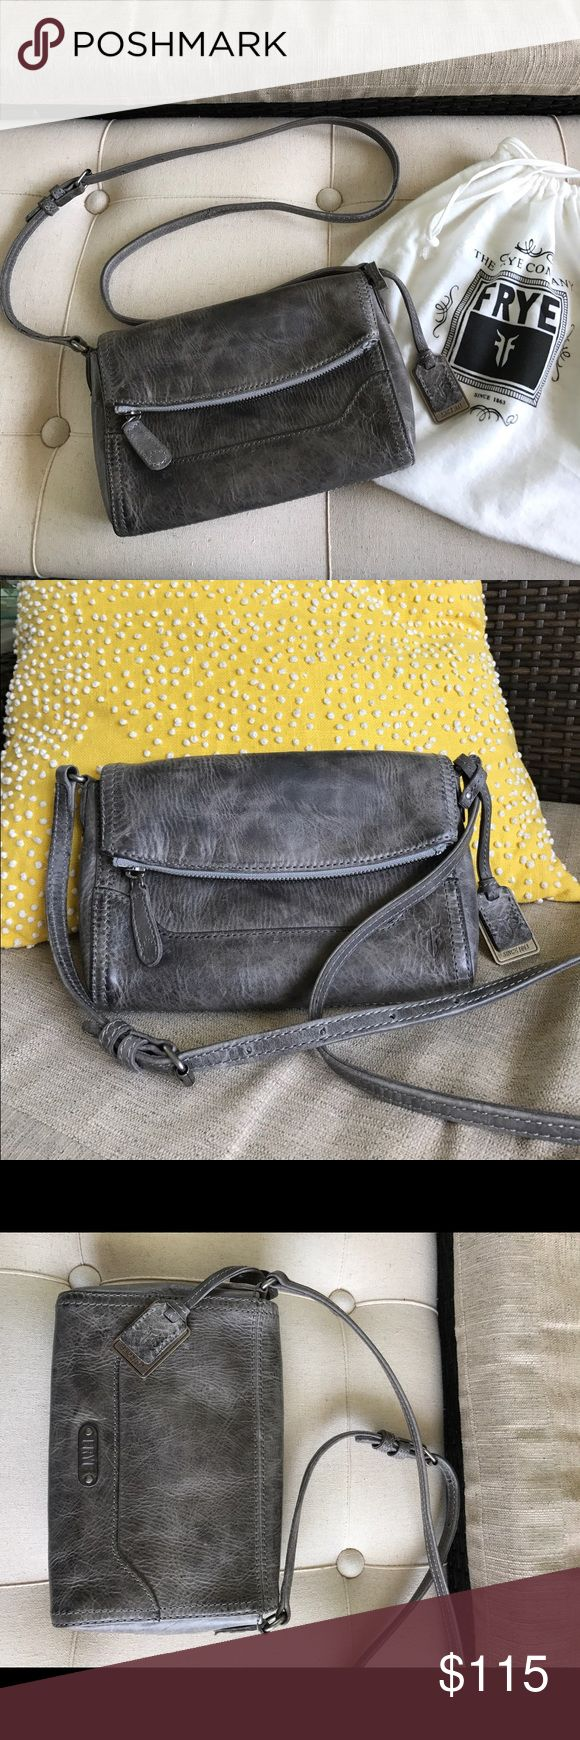 Frye NWOT Melissa Crossover Bag Gray Leather Purse I am unable to update my current listing so am trying to create a new listing!...Never carried Frye foldover gray leather crossbody or shoulder purse. Even smells new! Love the scent of good leather. Quality Frye. No issues! Comes with dust bag. Frye Bags Crossbody Bags